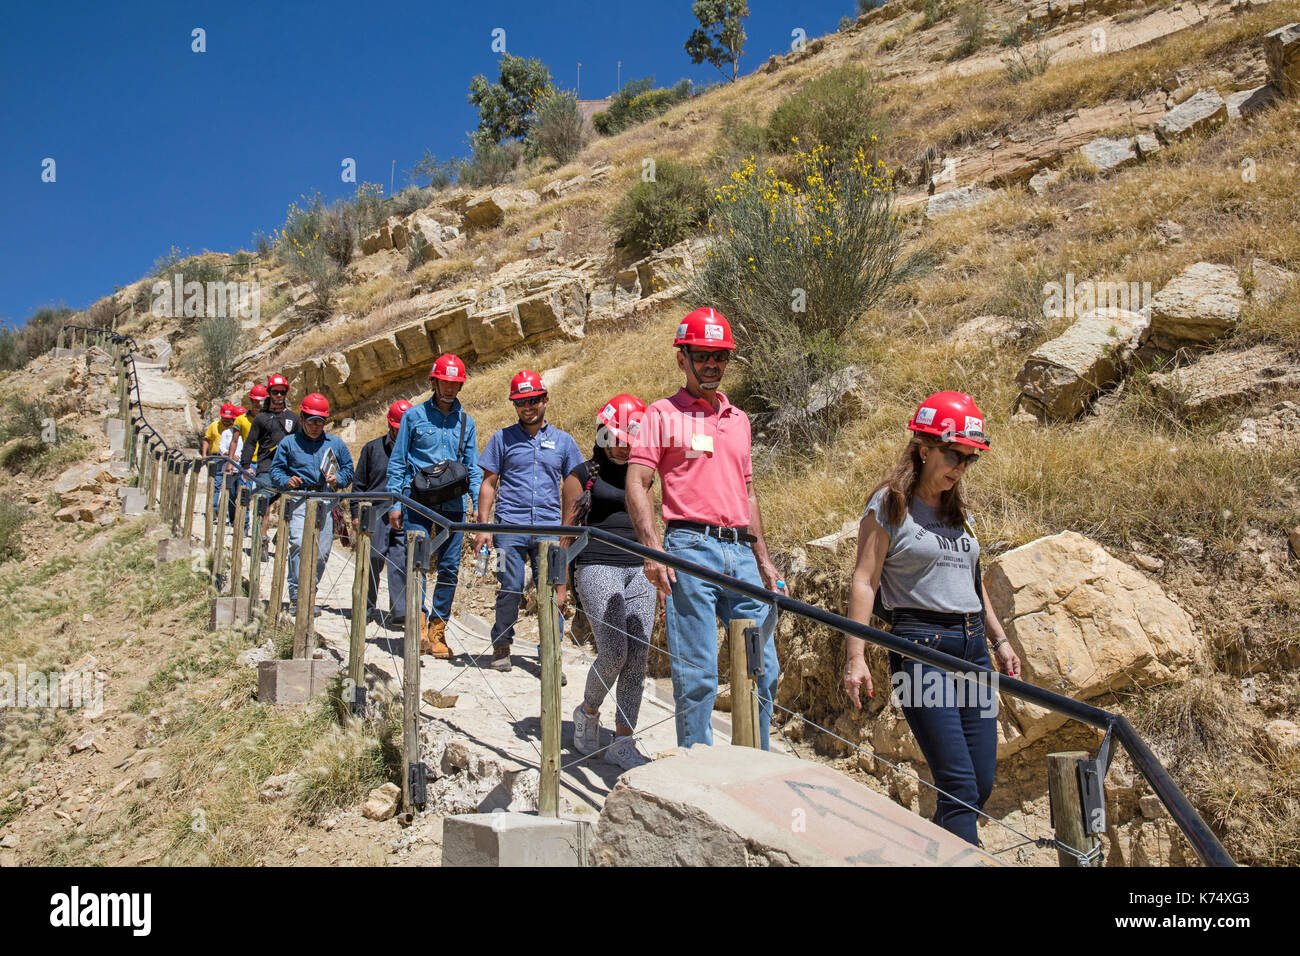 Tourists visiting the Cal Orck'o cliff in the Parque Cretácico / Cretaceous Park famous for its dinosaur footprints, Sucre, Bolivia - Stock Image